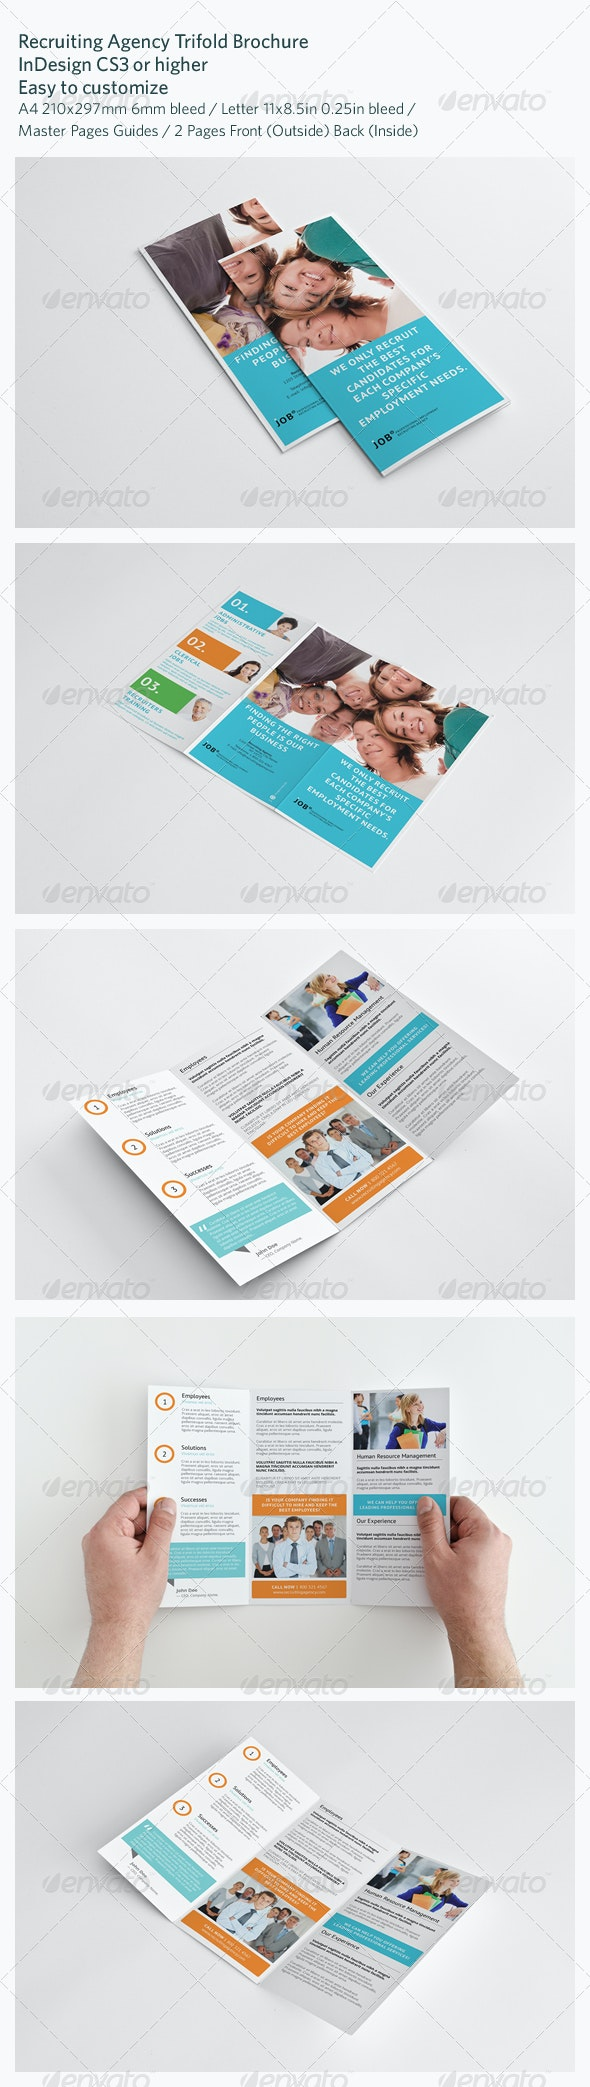 Recruiting Agency Trifold Brochure - Brochures Print Templates